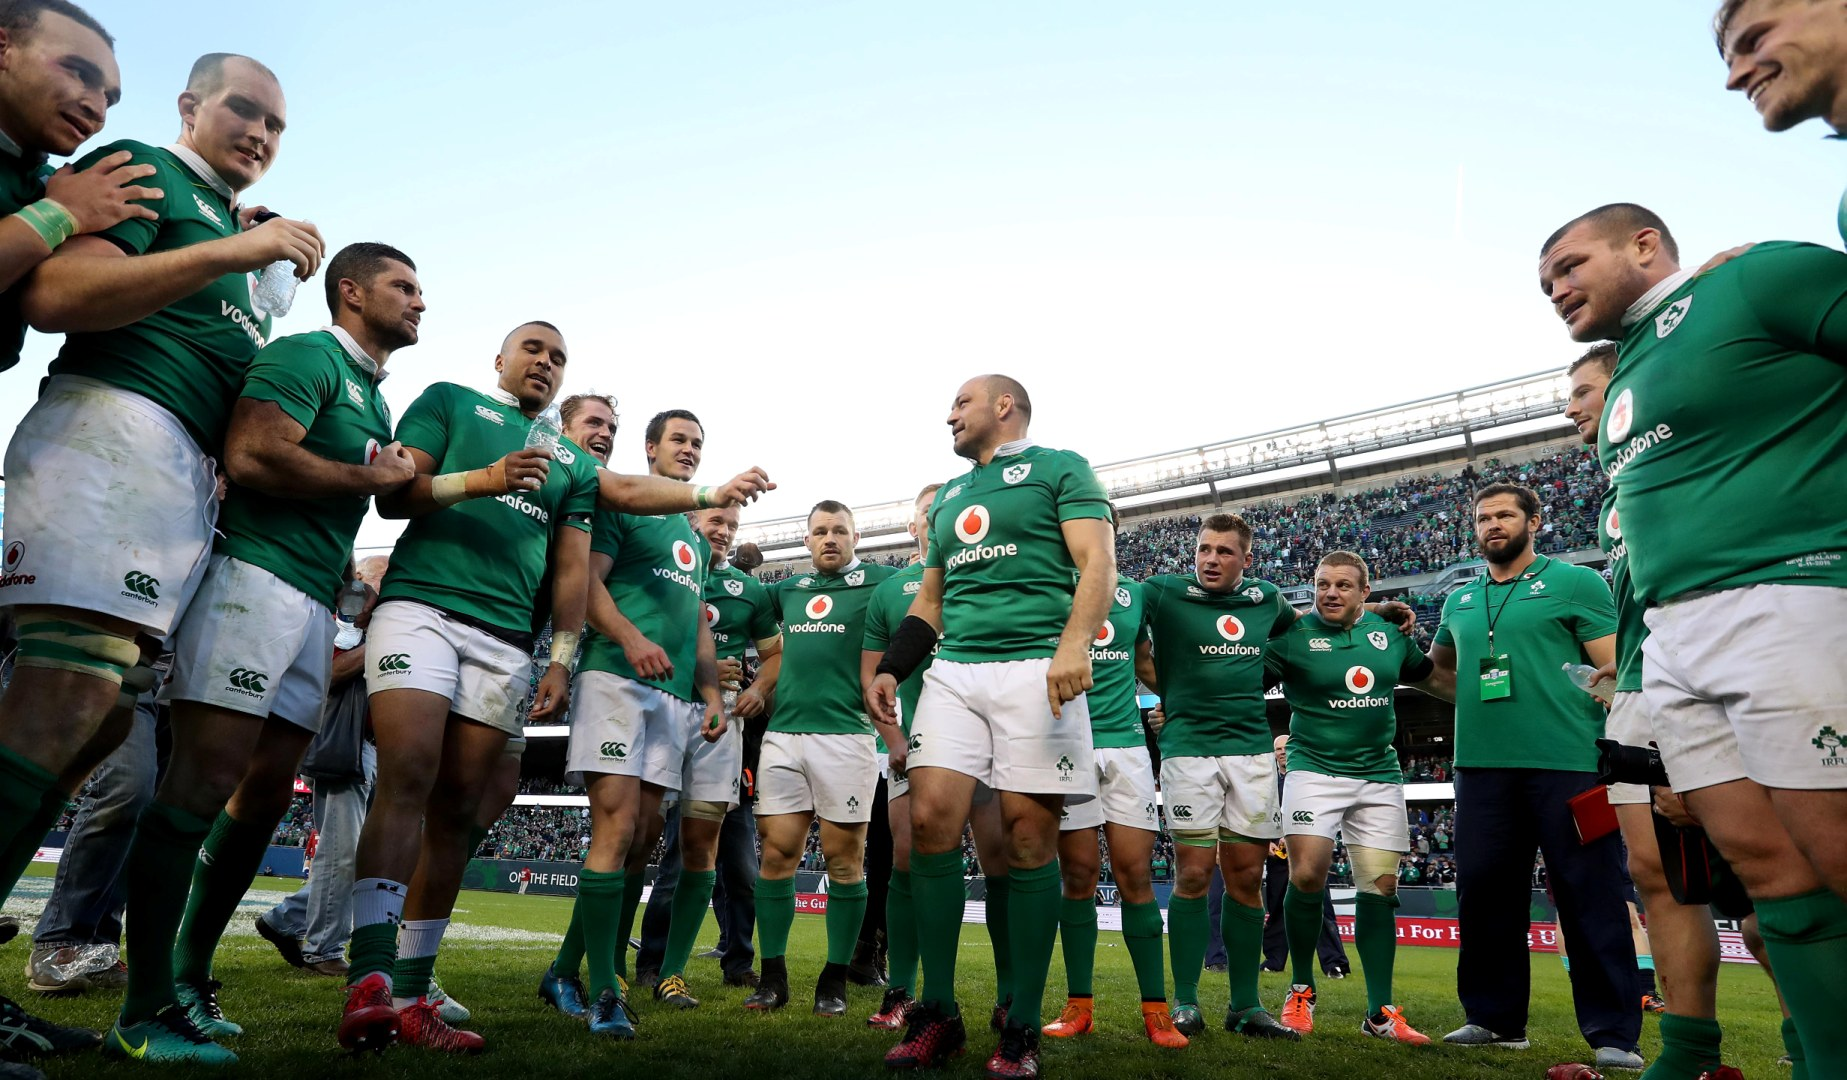 Best hails positive attitude after epic Ireland win